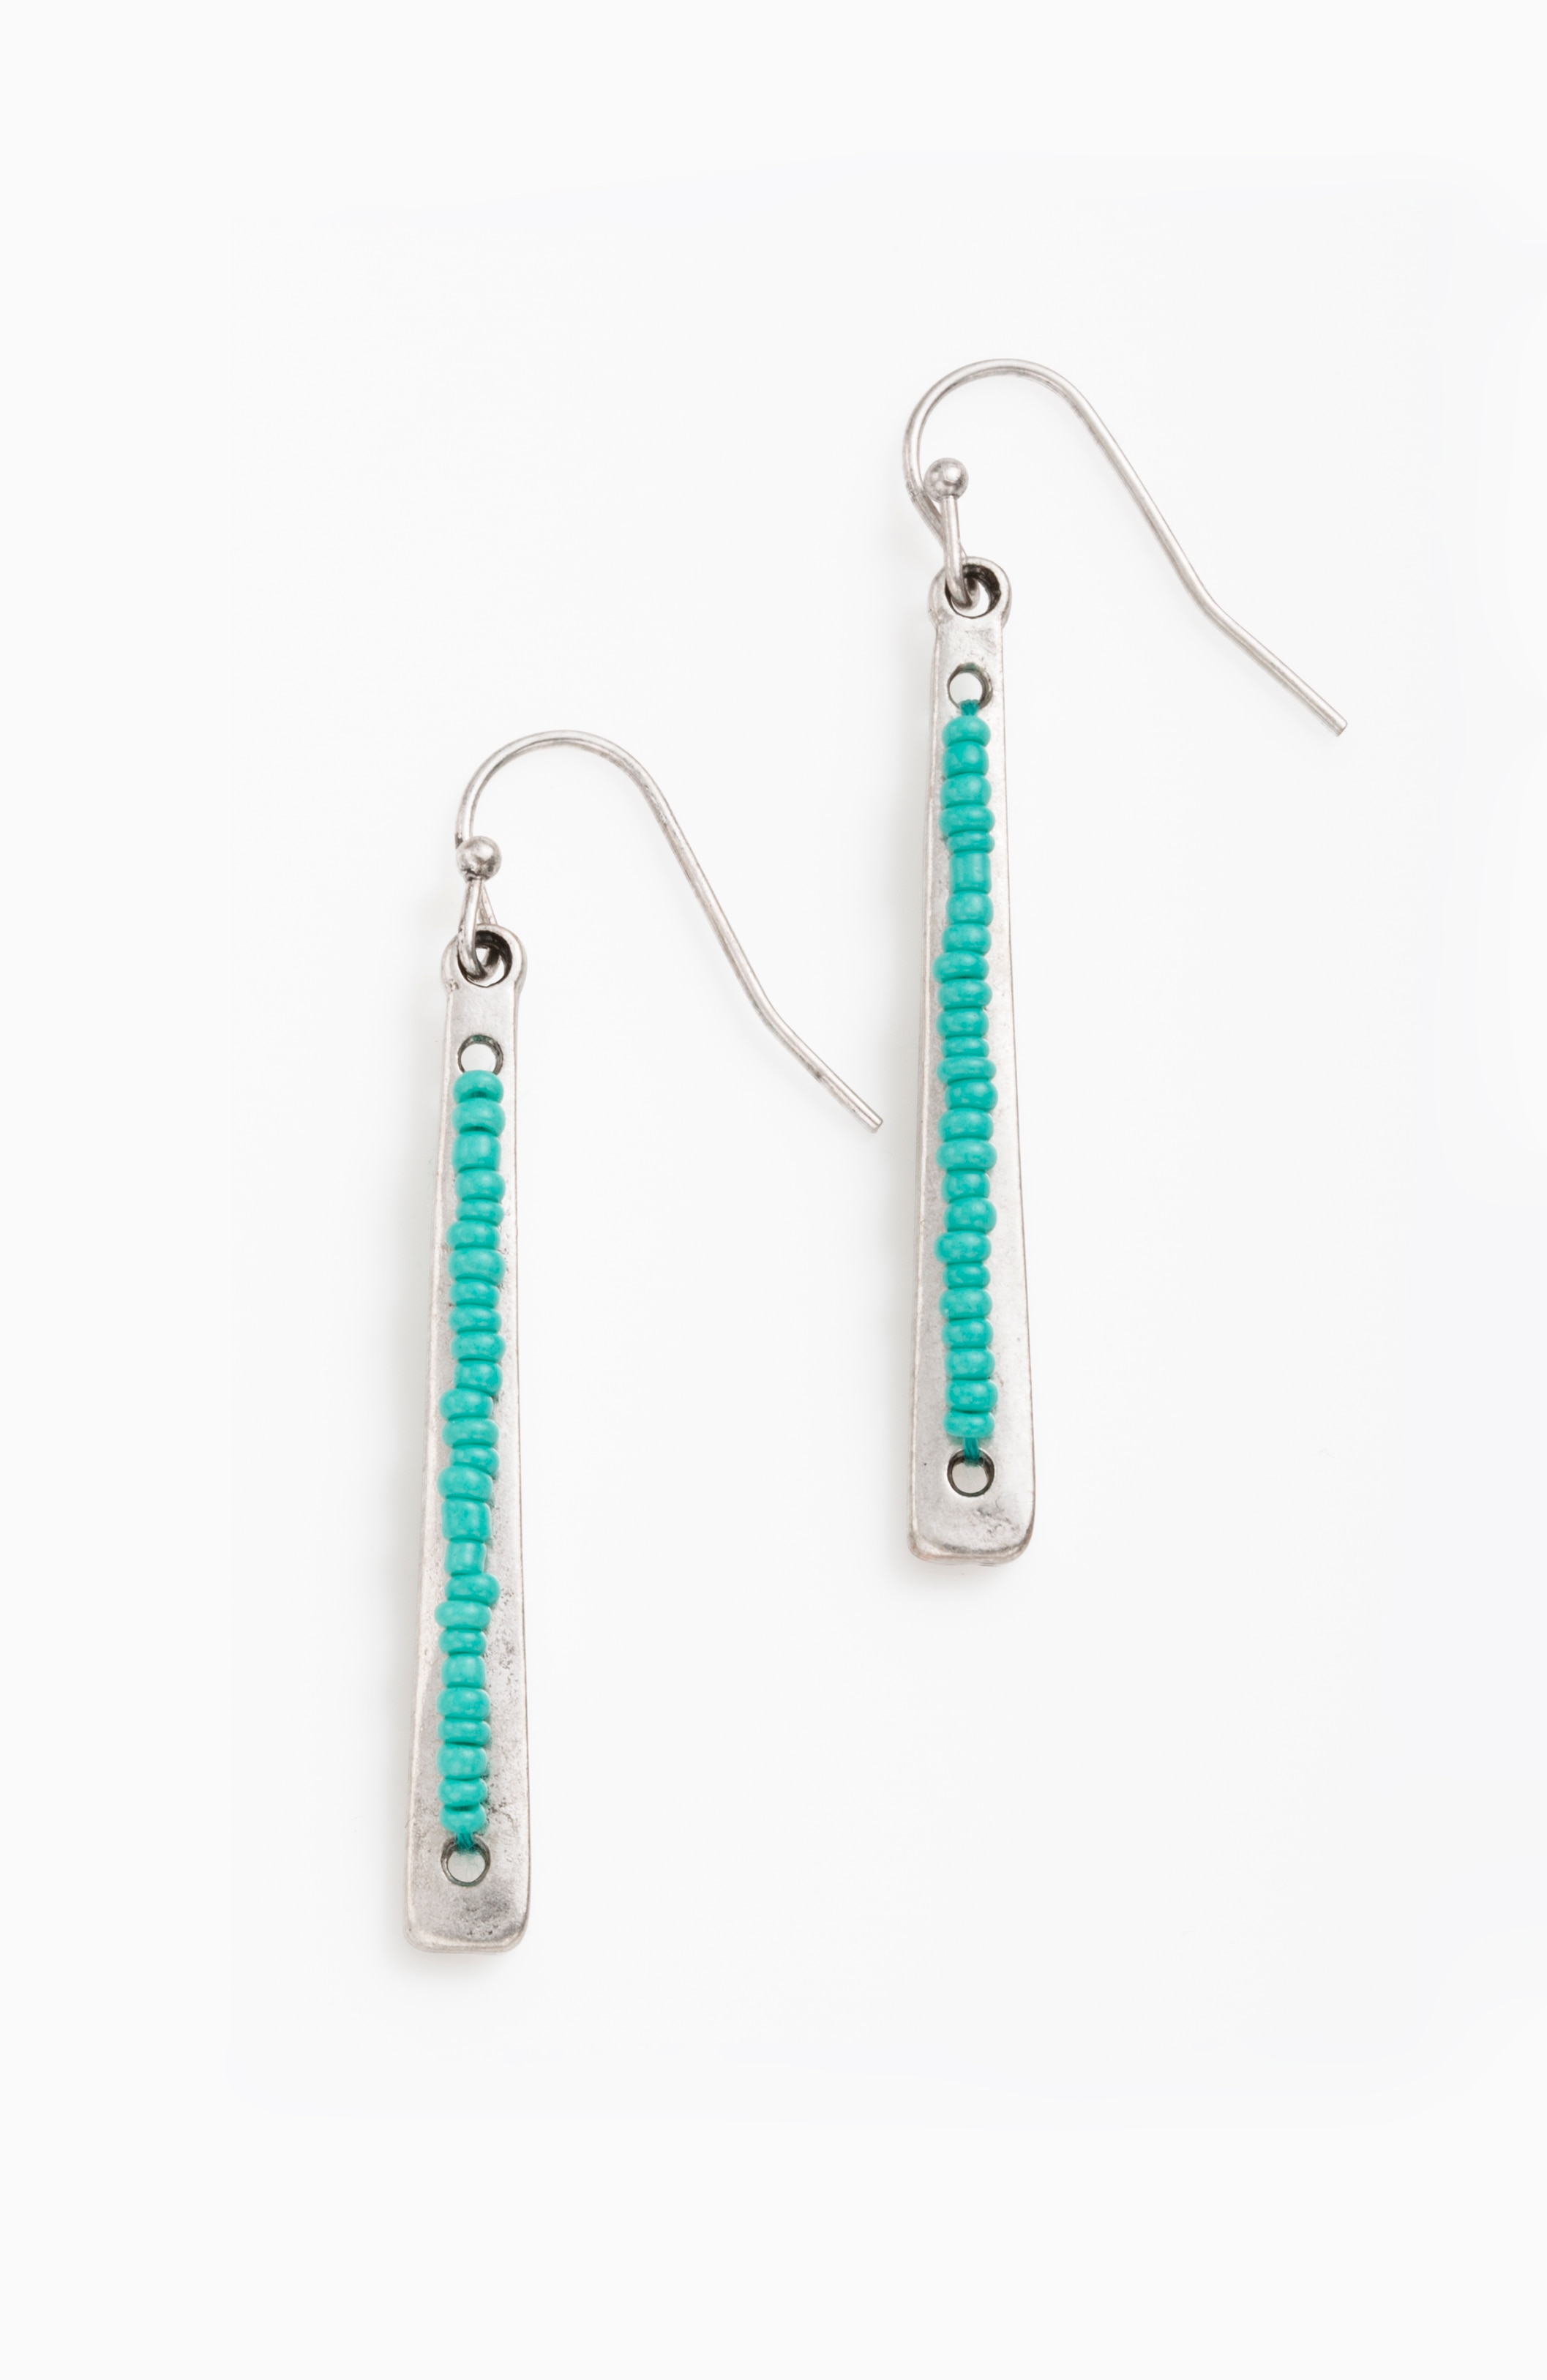 market beads drop earrings